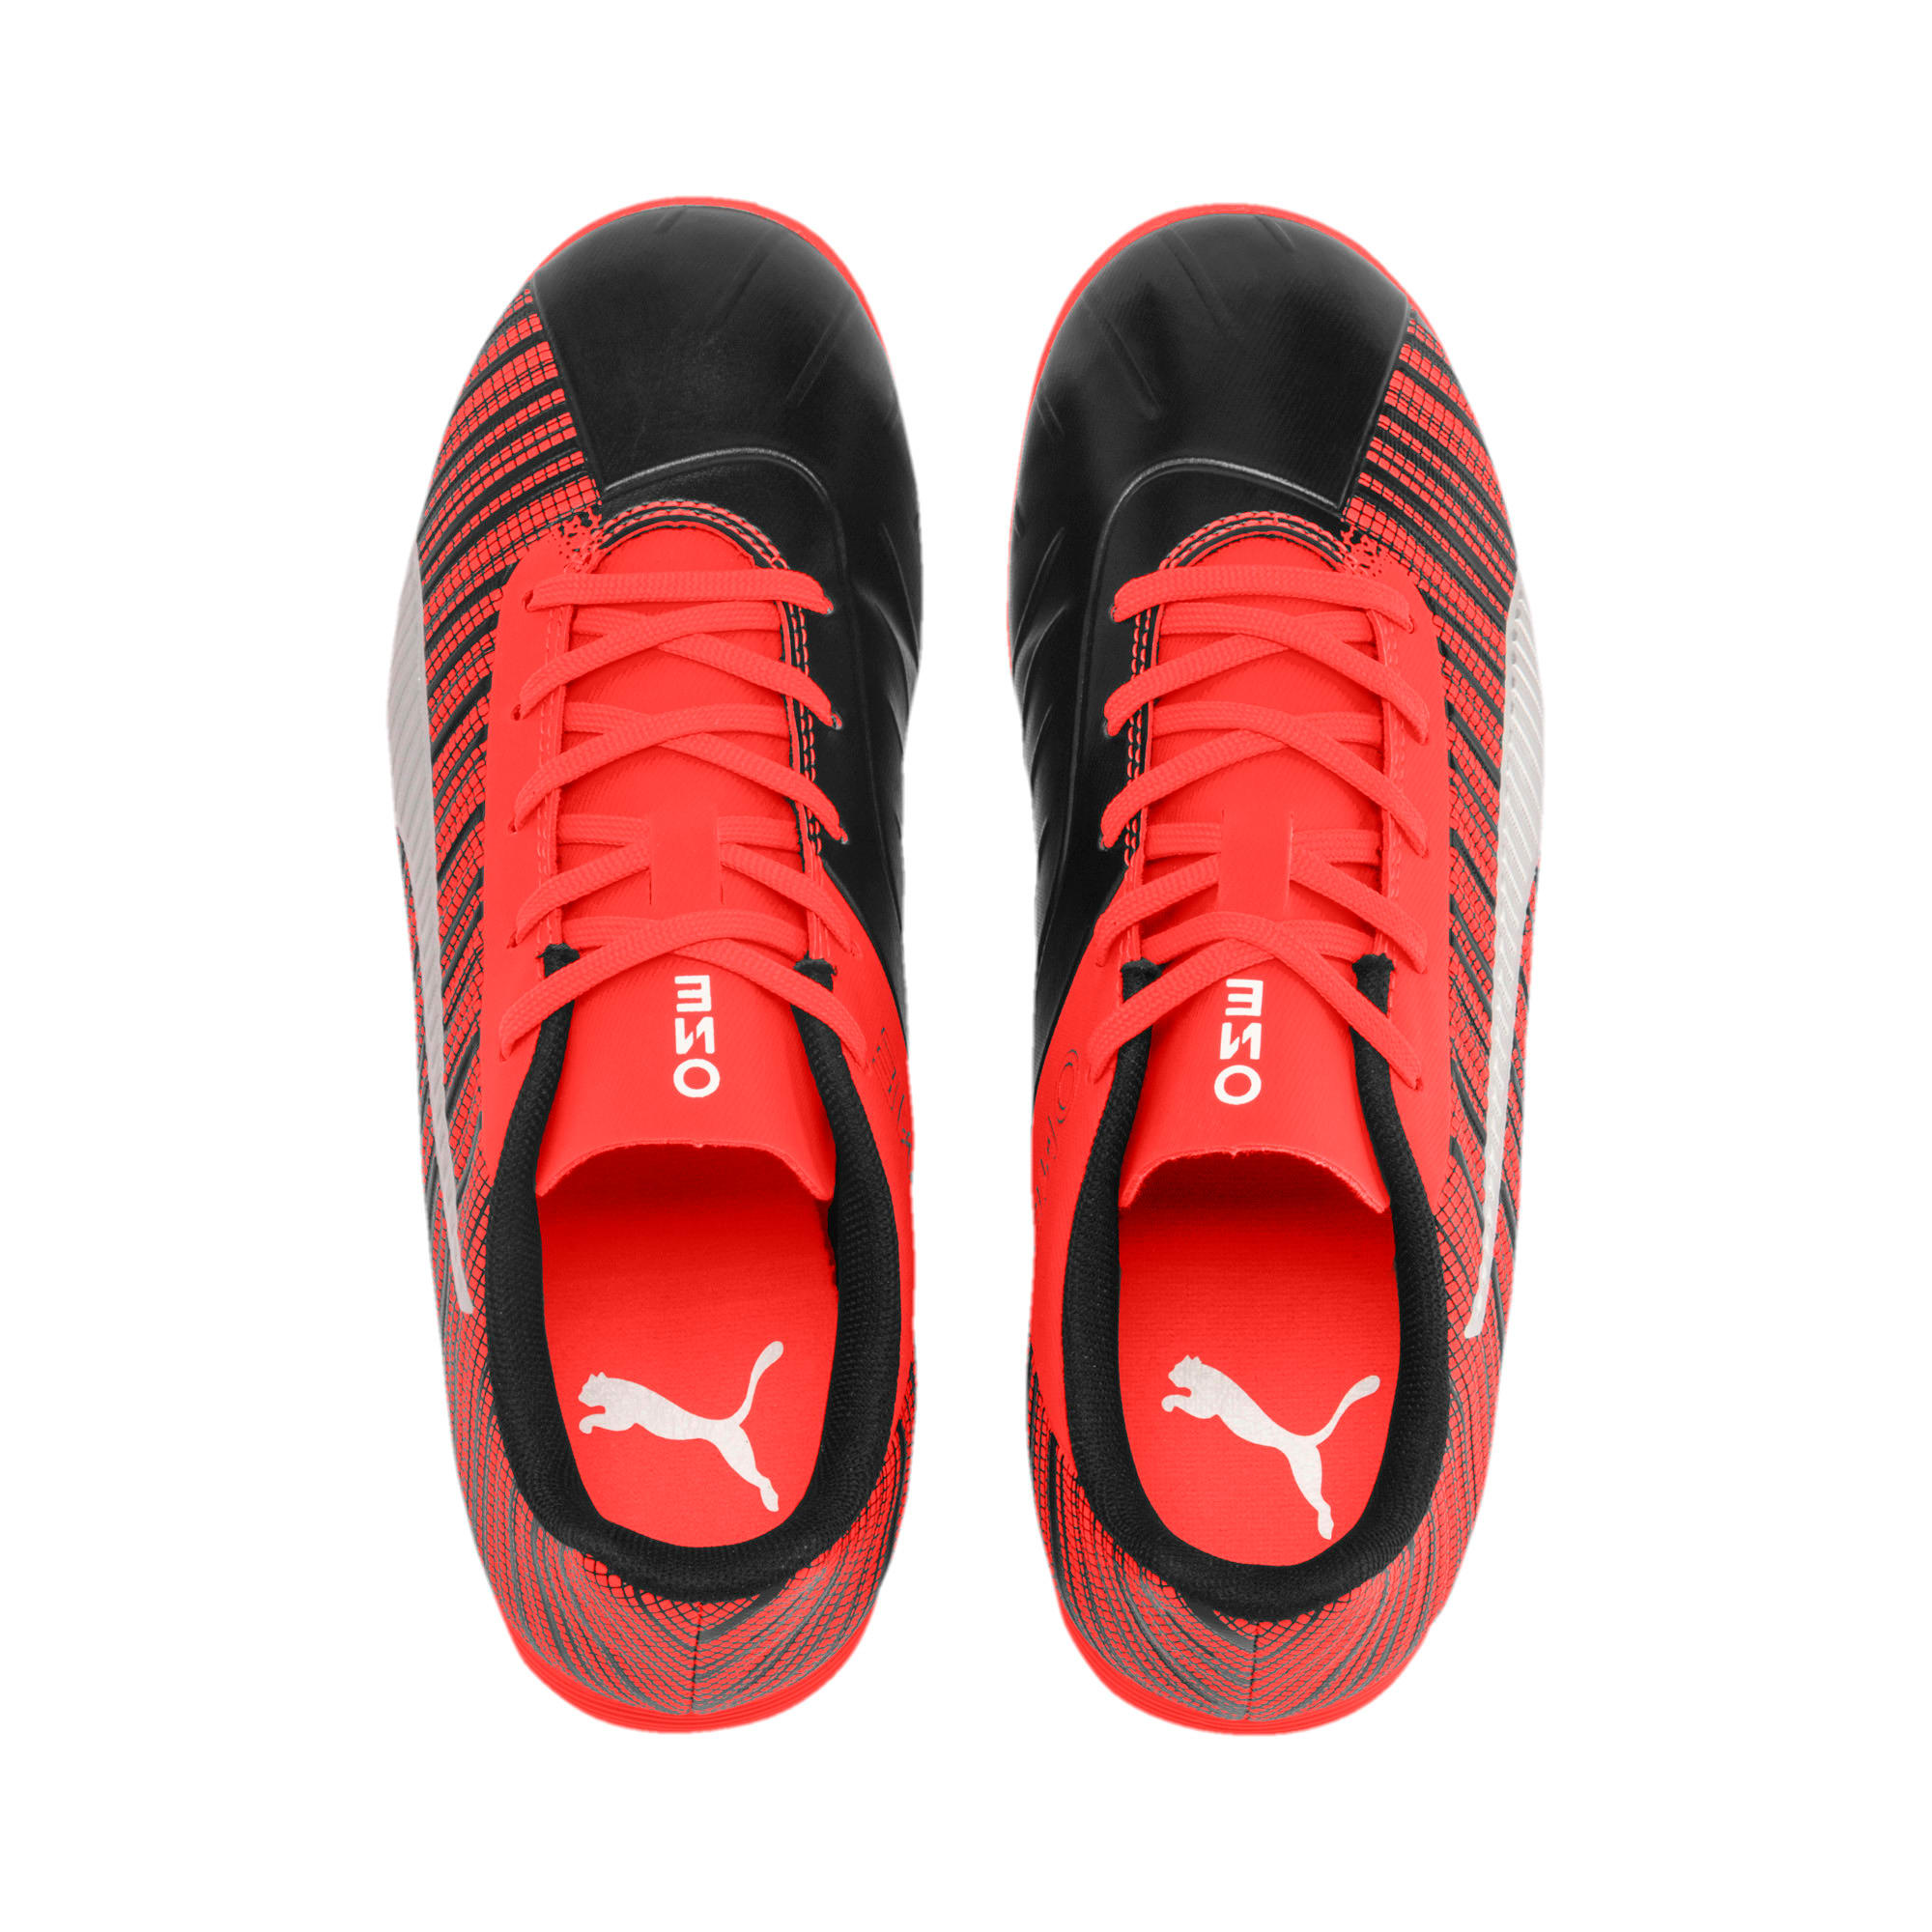 Thumbnail 6 of PUMA ONE 5.4 IT Soccer Shoes JR, Black-Nrgy Red-Aged Silver, medium